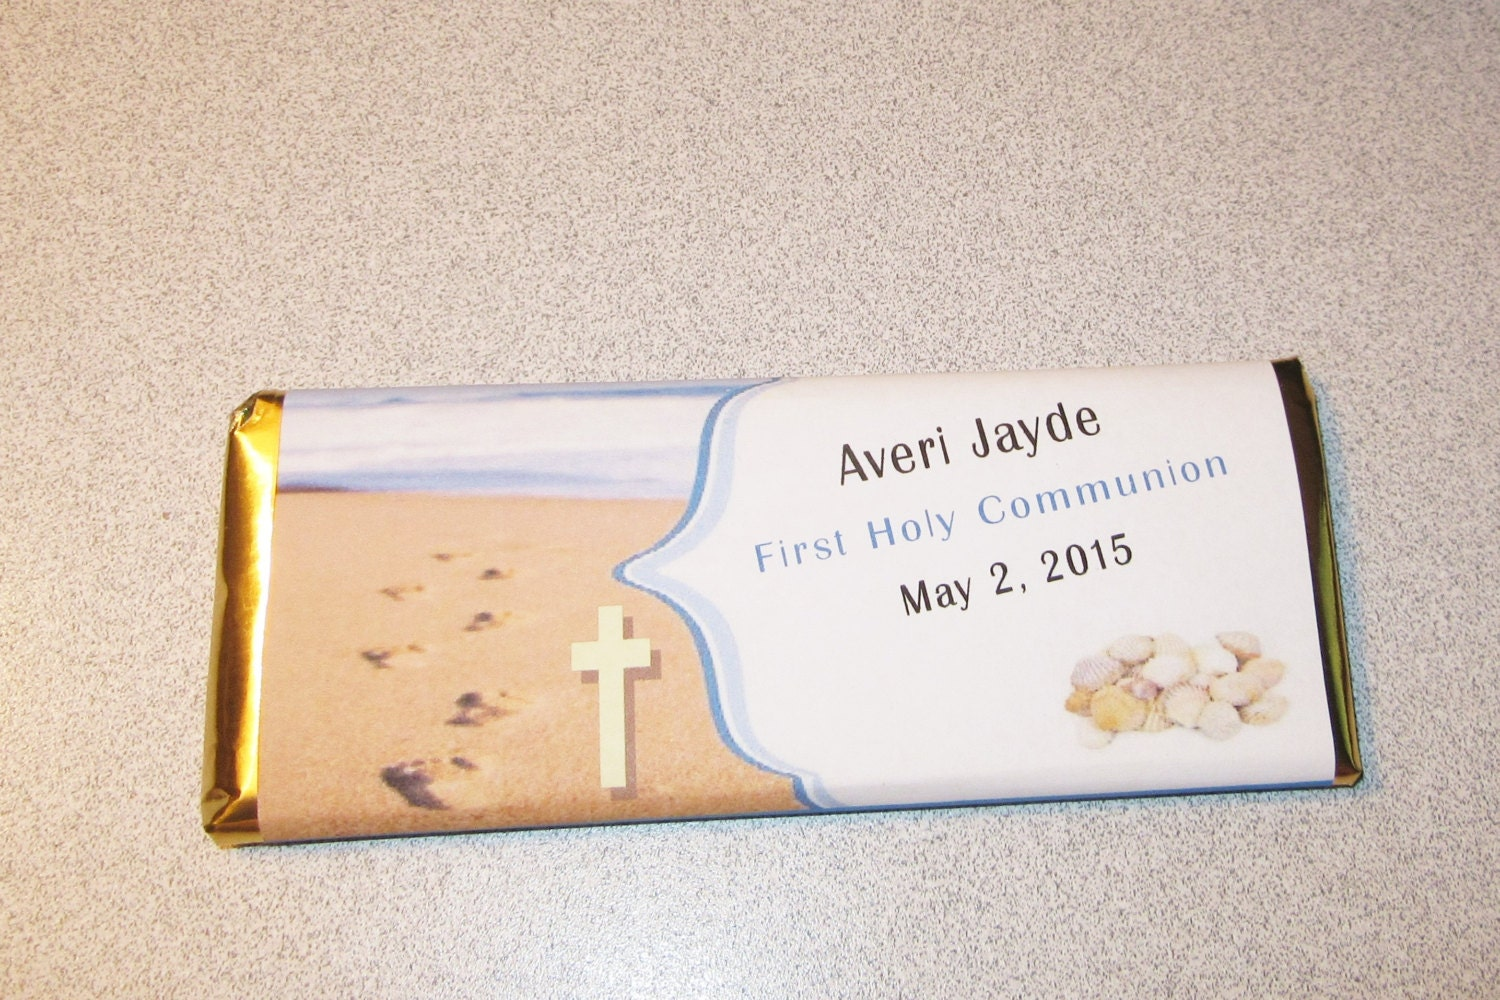 First Holy Communion Beach Themed Favor Wrapped Chocolate